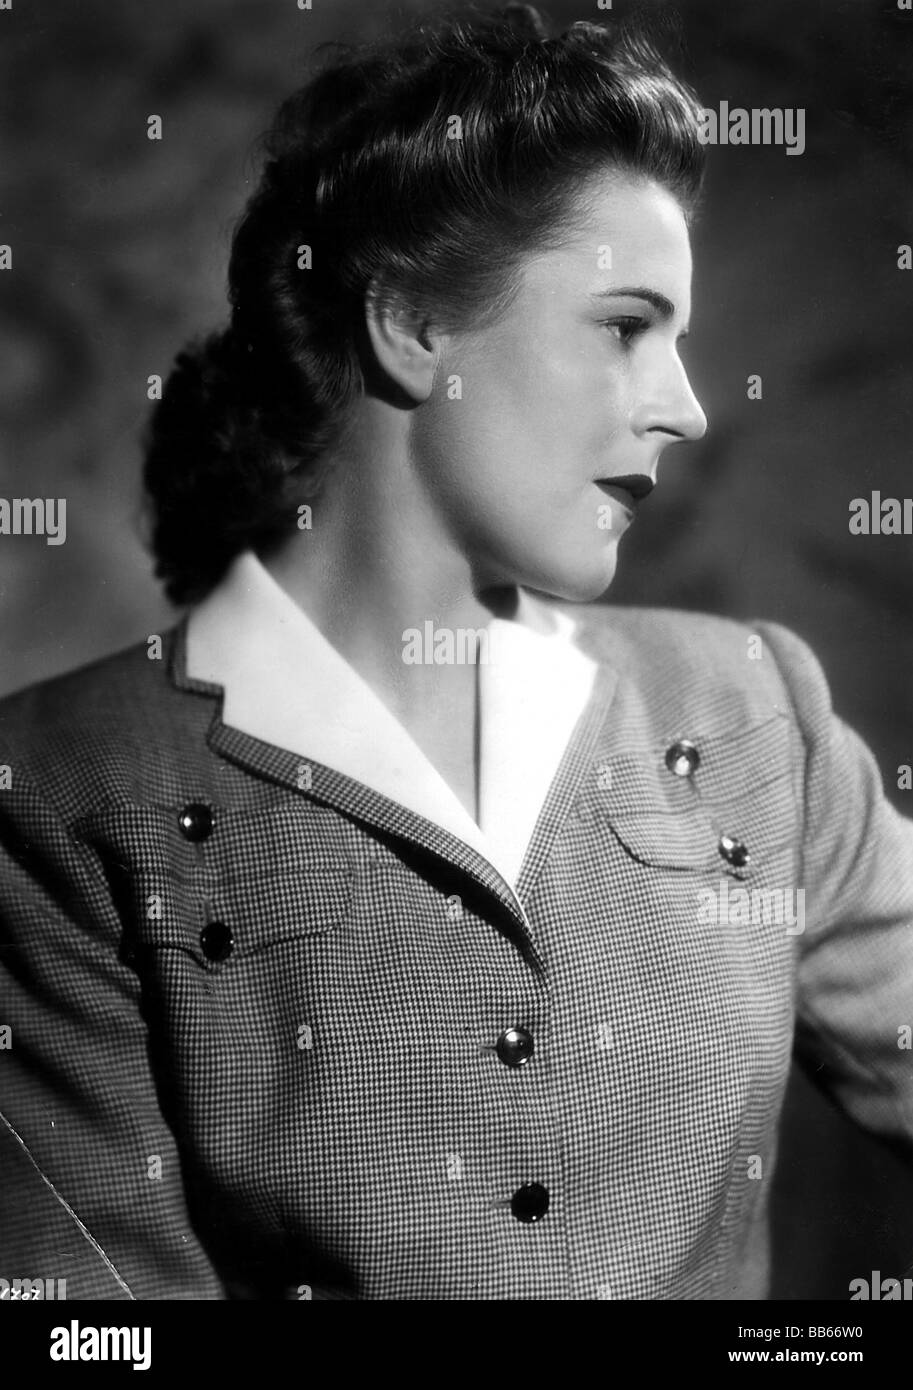 Wessely, Paula, 10.1.1907 - 11.5.2000, Austrian actress, portrait, 1930s, Additional-Rights-Clearances-NA - Stock Image